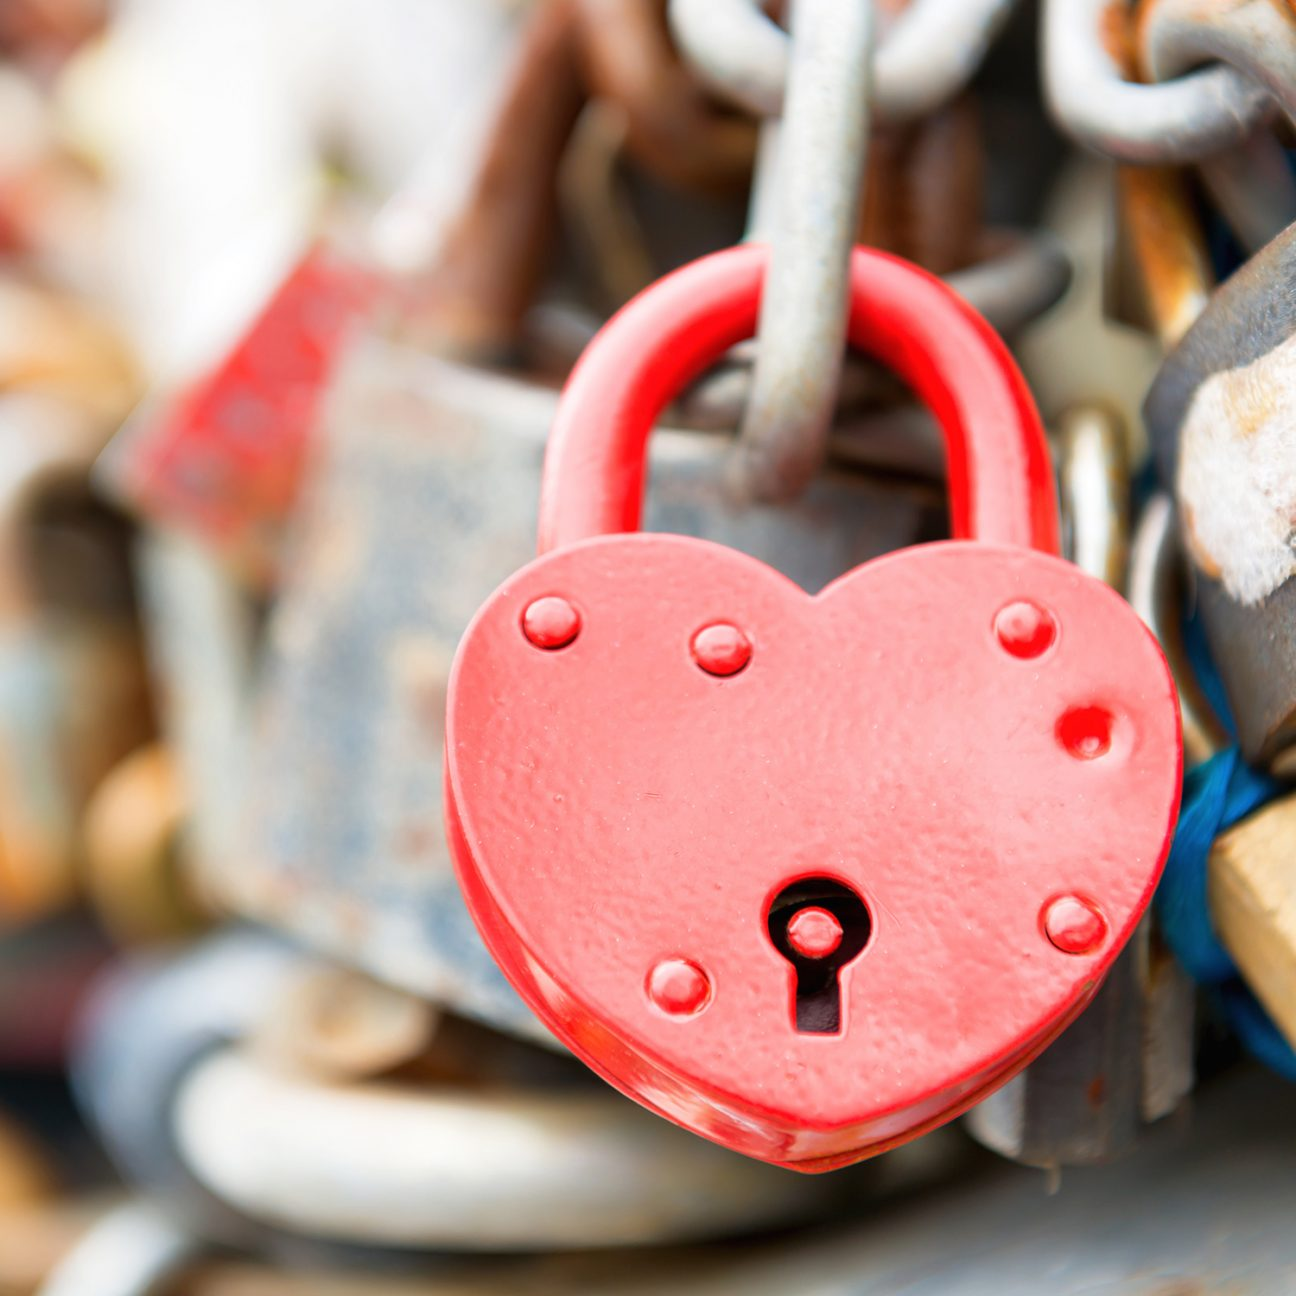 heart shaped lock